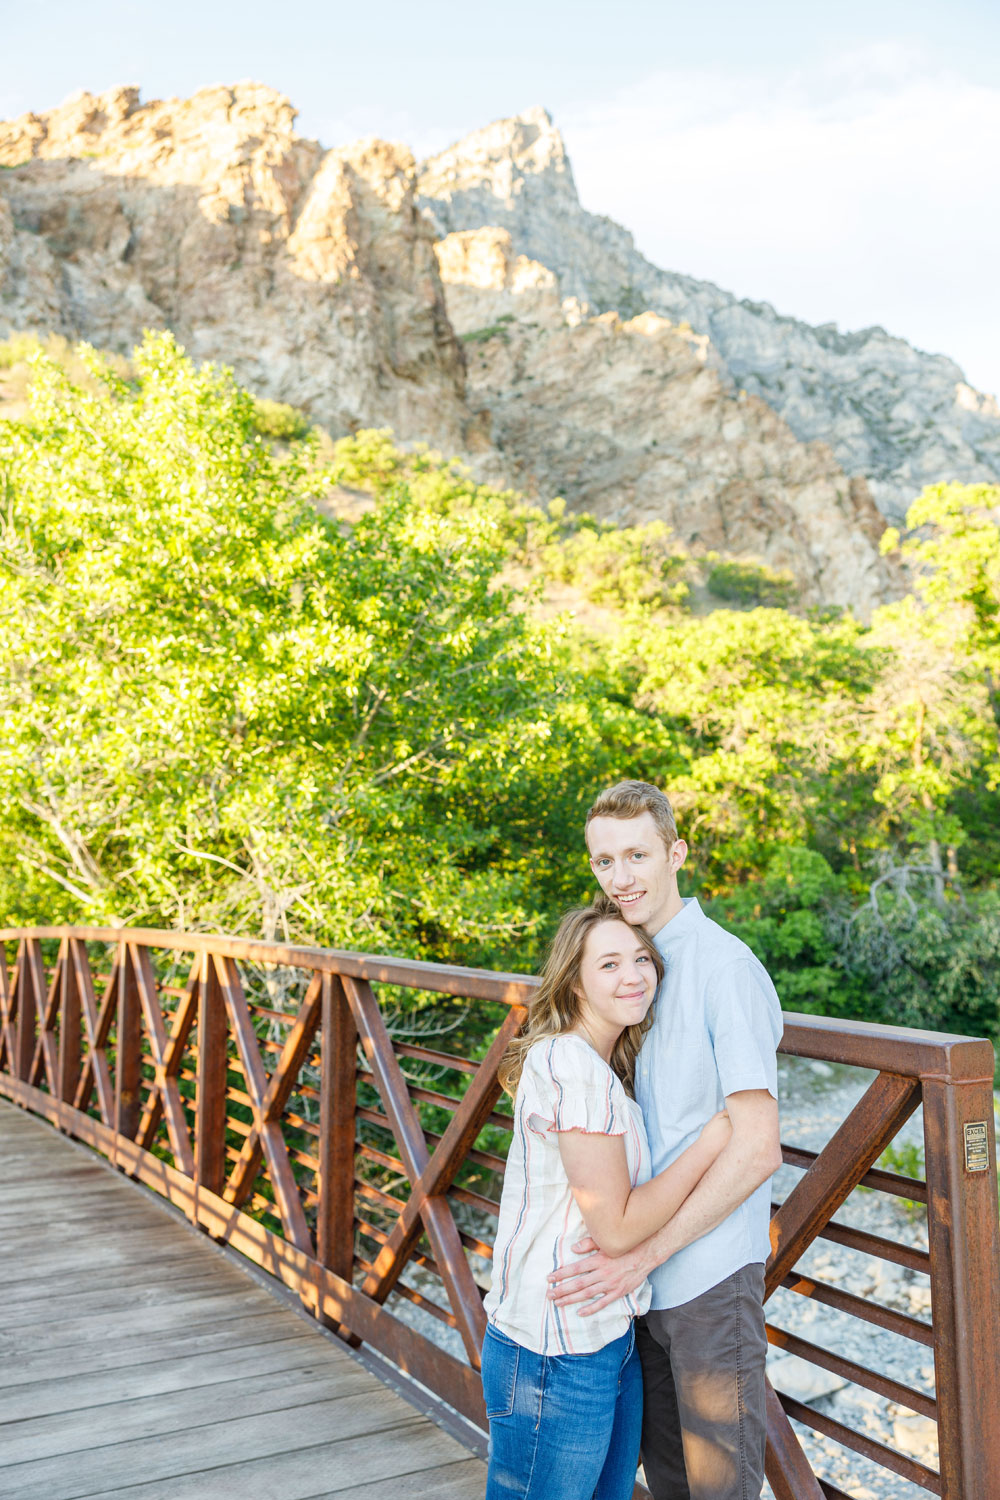 Bridges, mountains, canyons, and couples